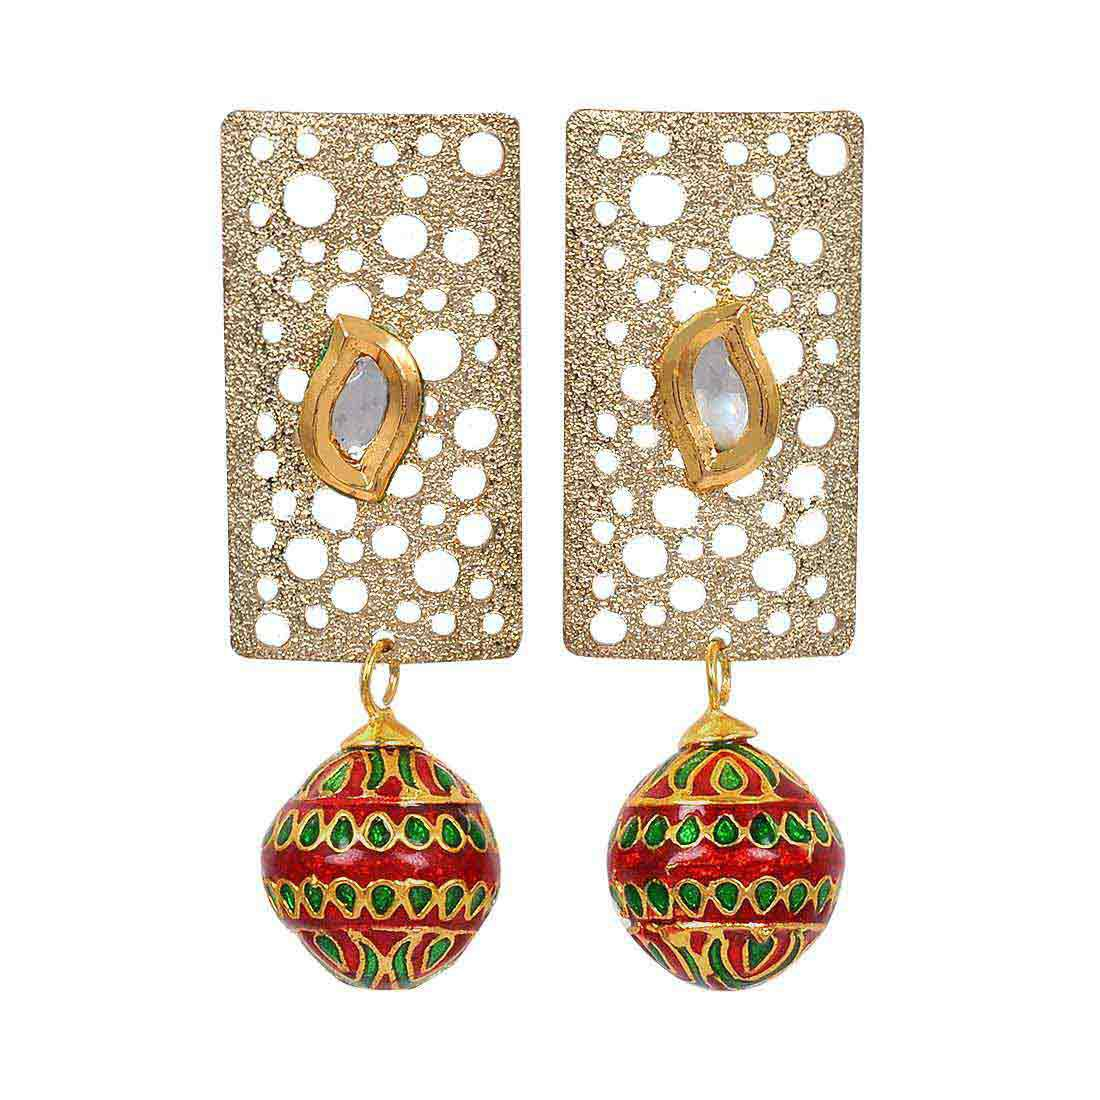 Maayra Wedding Earrings Brass Dangler Drop Maroon Green Kundan Meenakari Jewellery